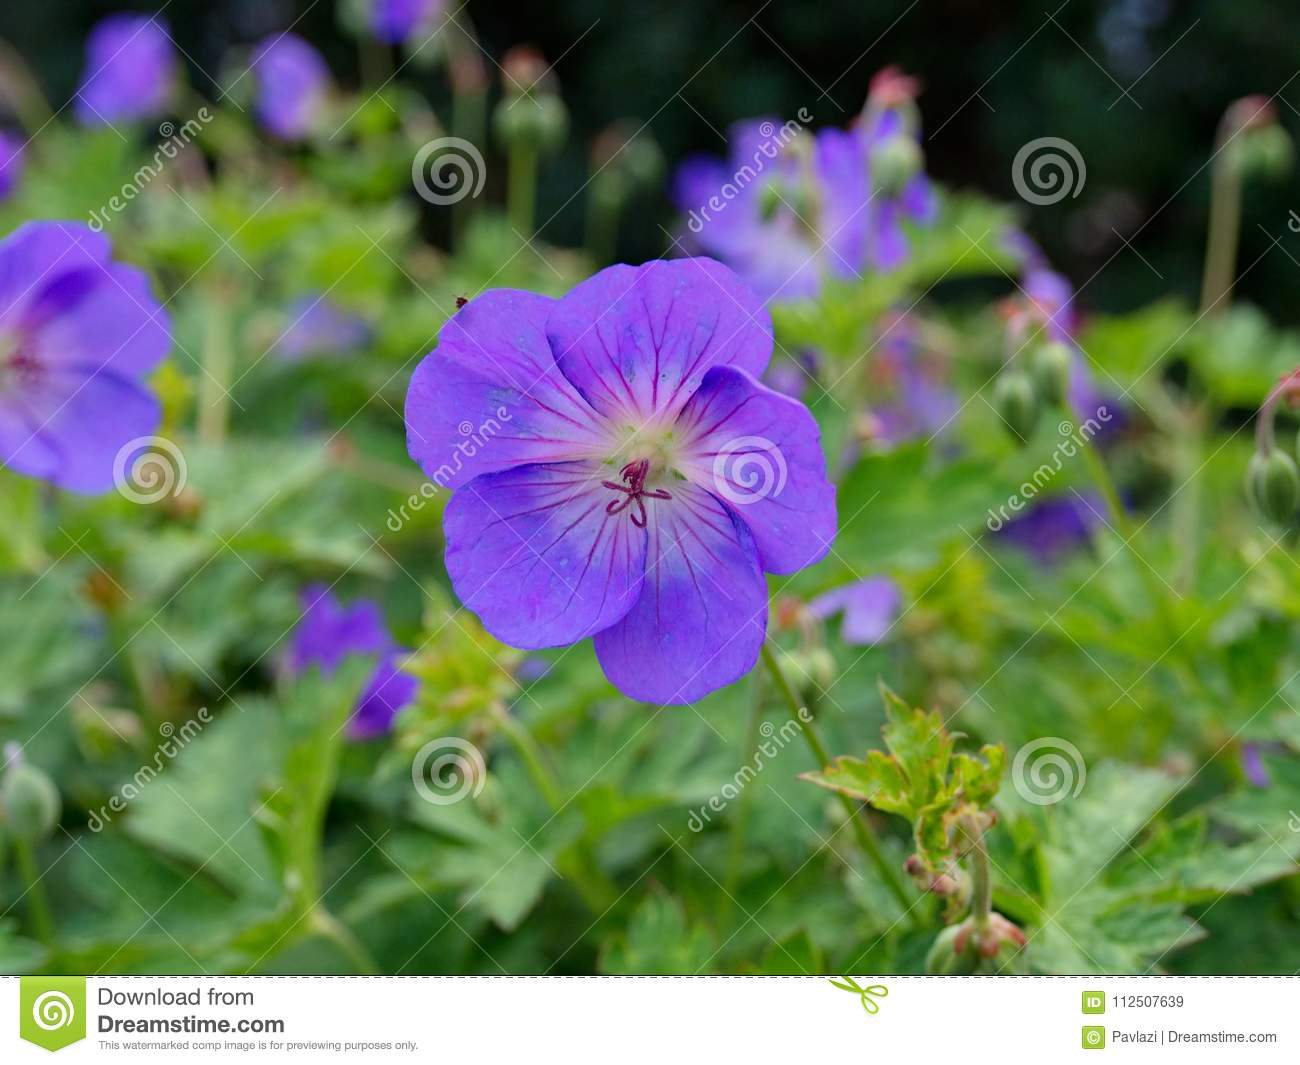 Blue Violet Flower Of Cranesbill Geranium Stock Image Image Of